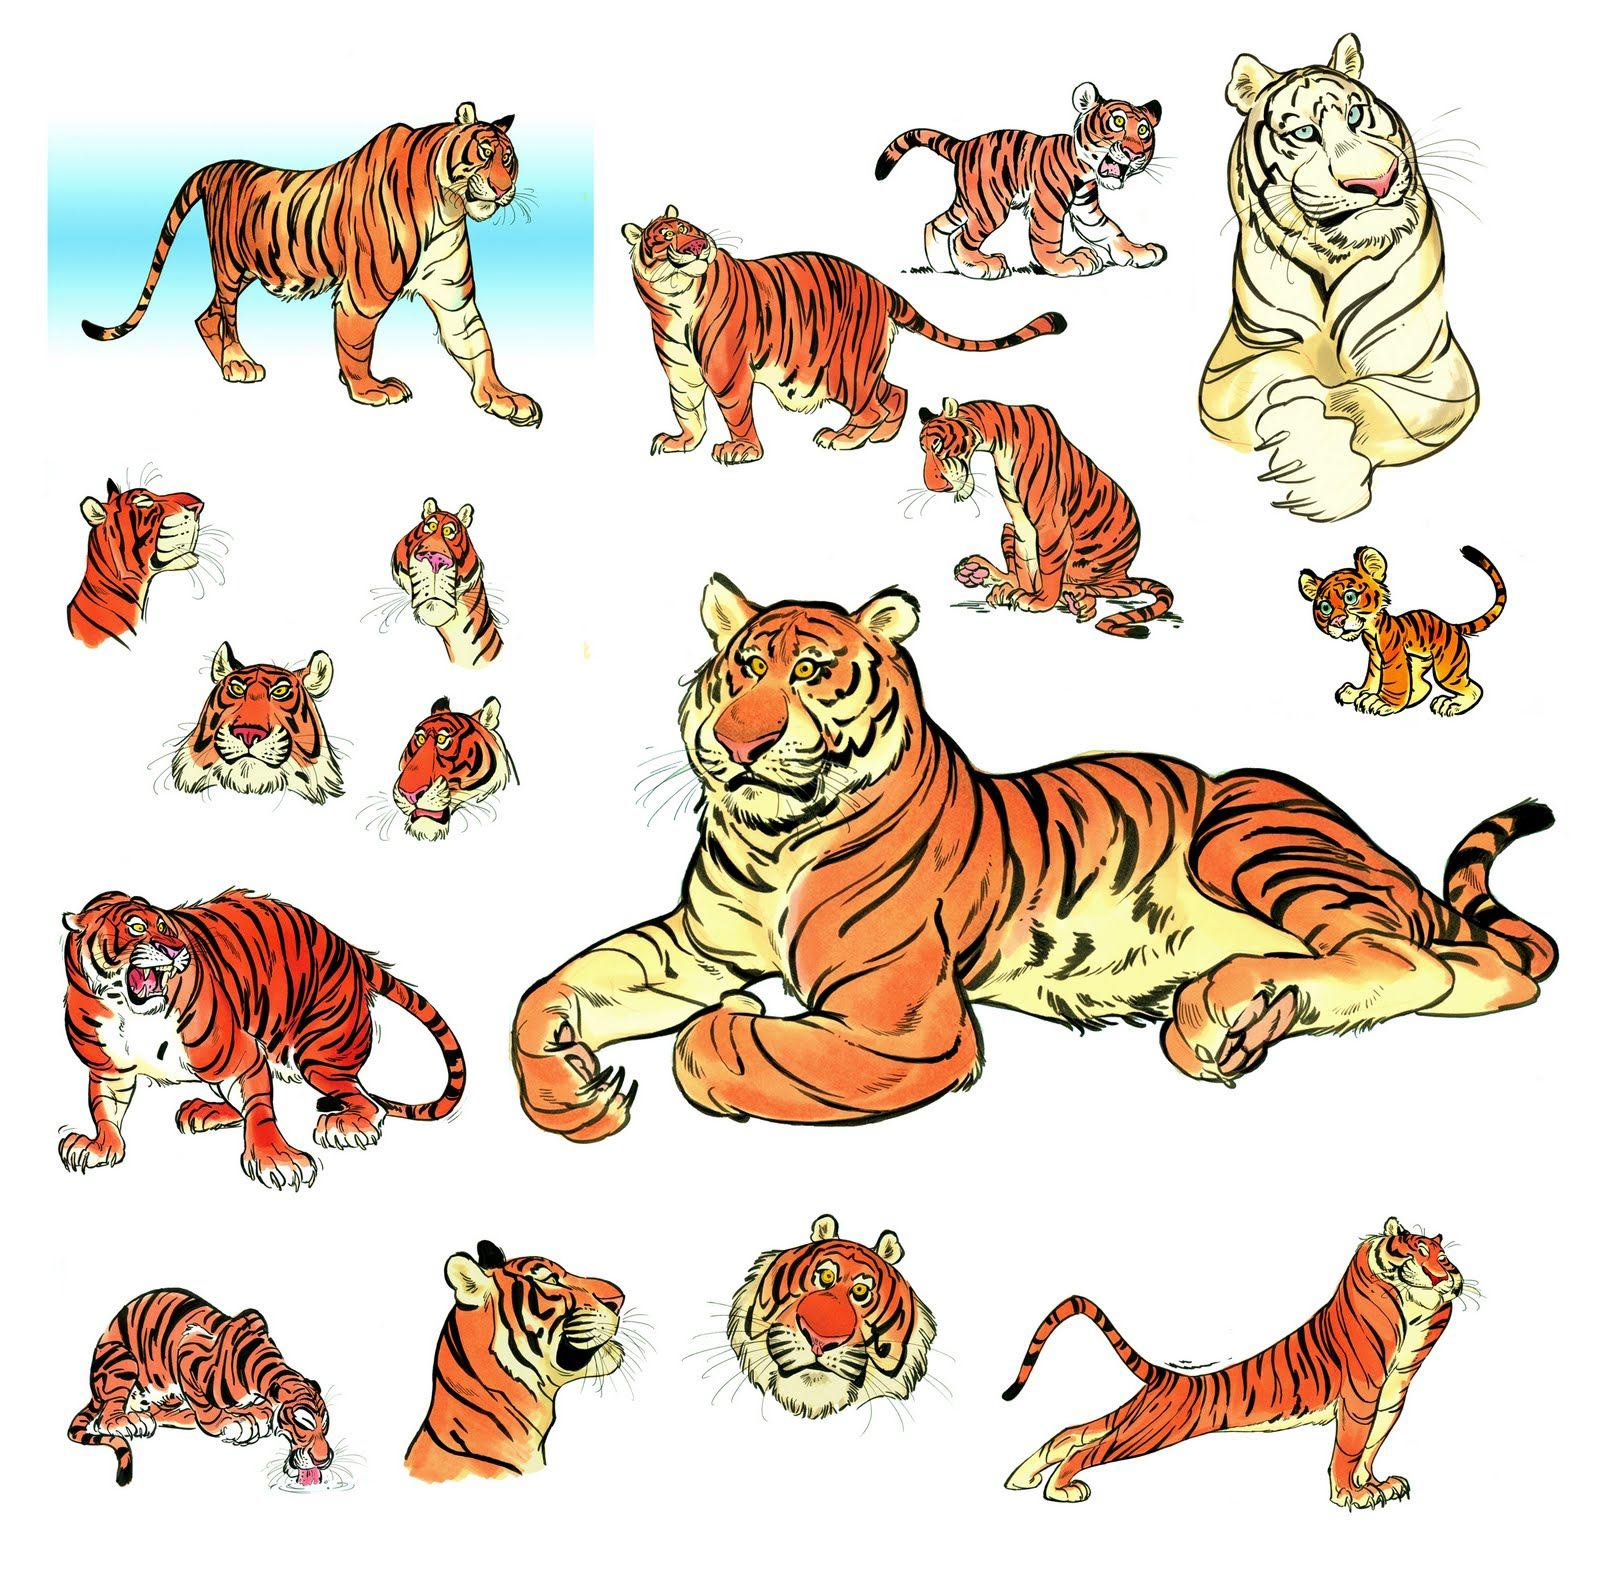 Tiger drawing reference